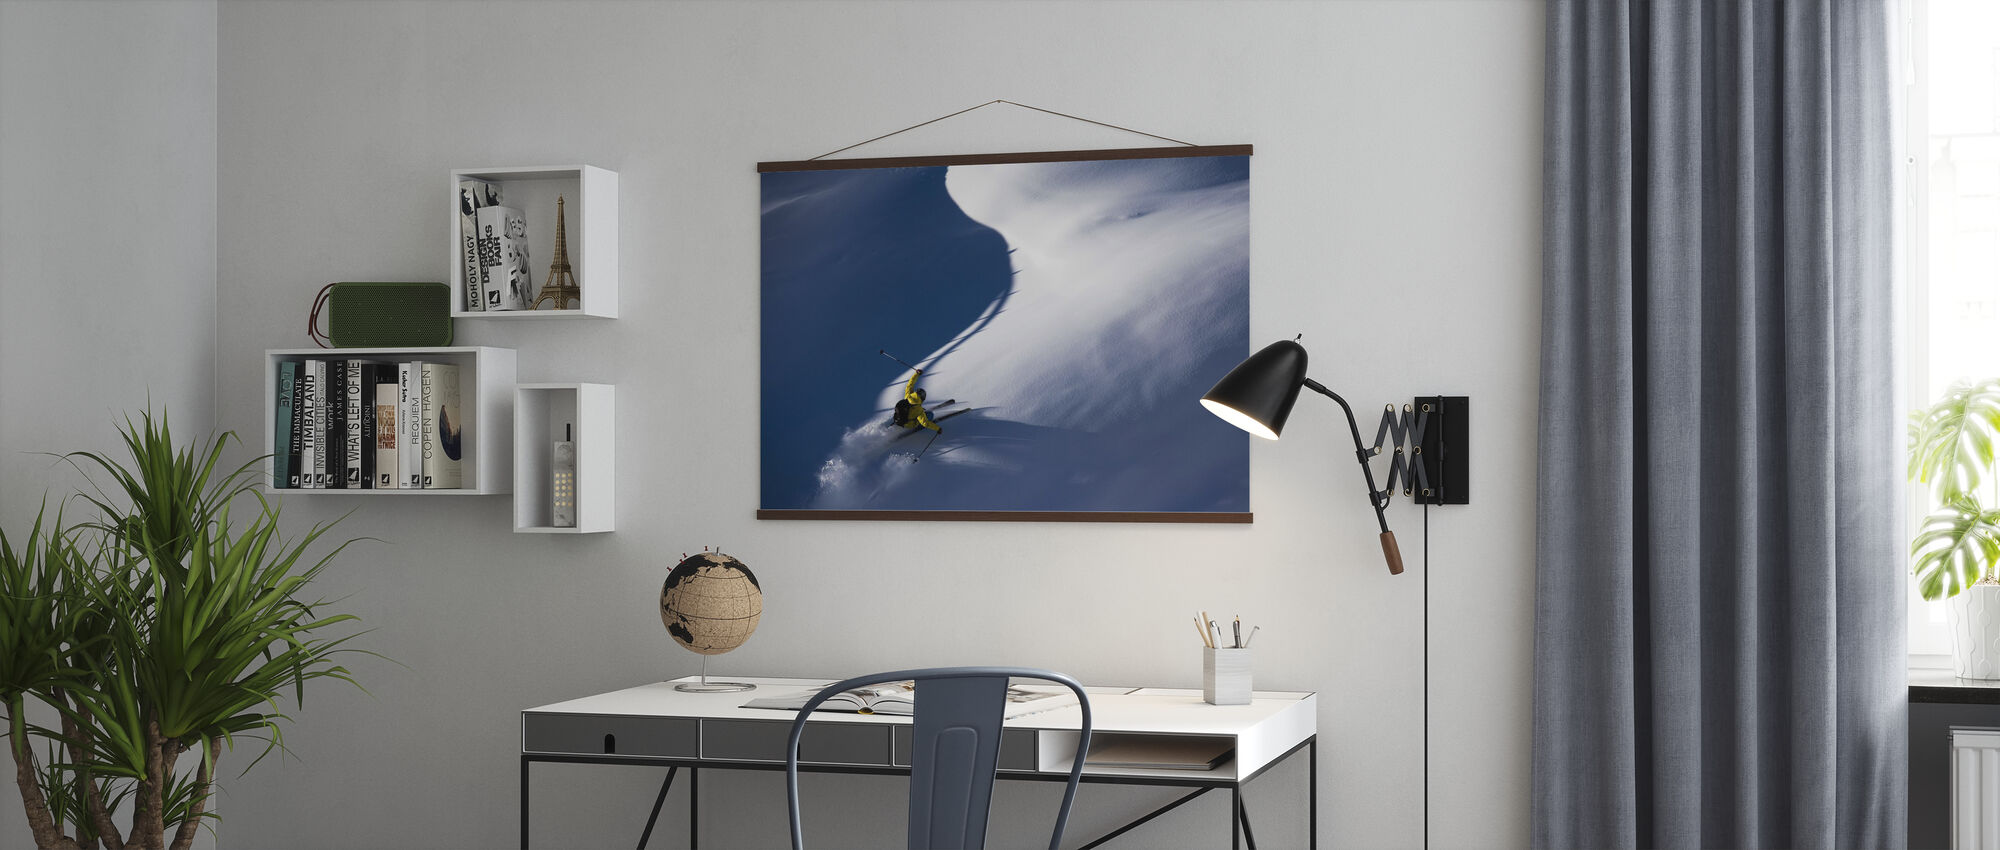 Powder Snow Ski - Poster - Büro